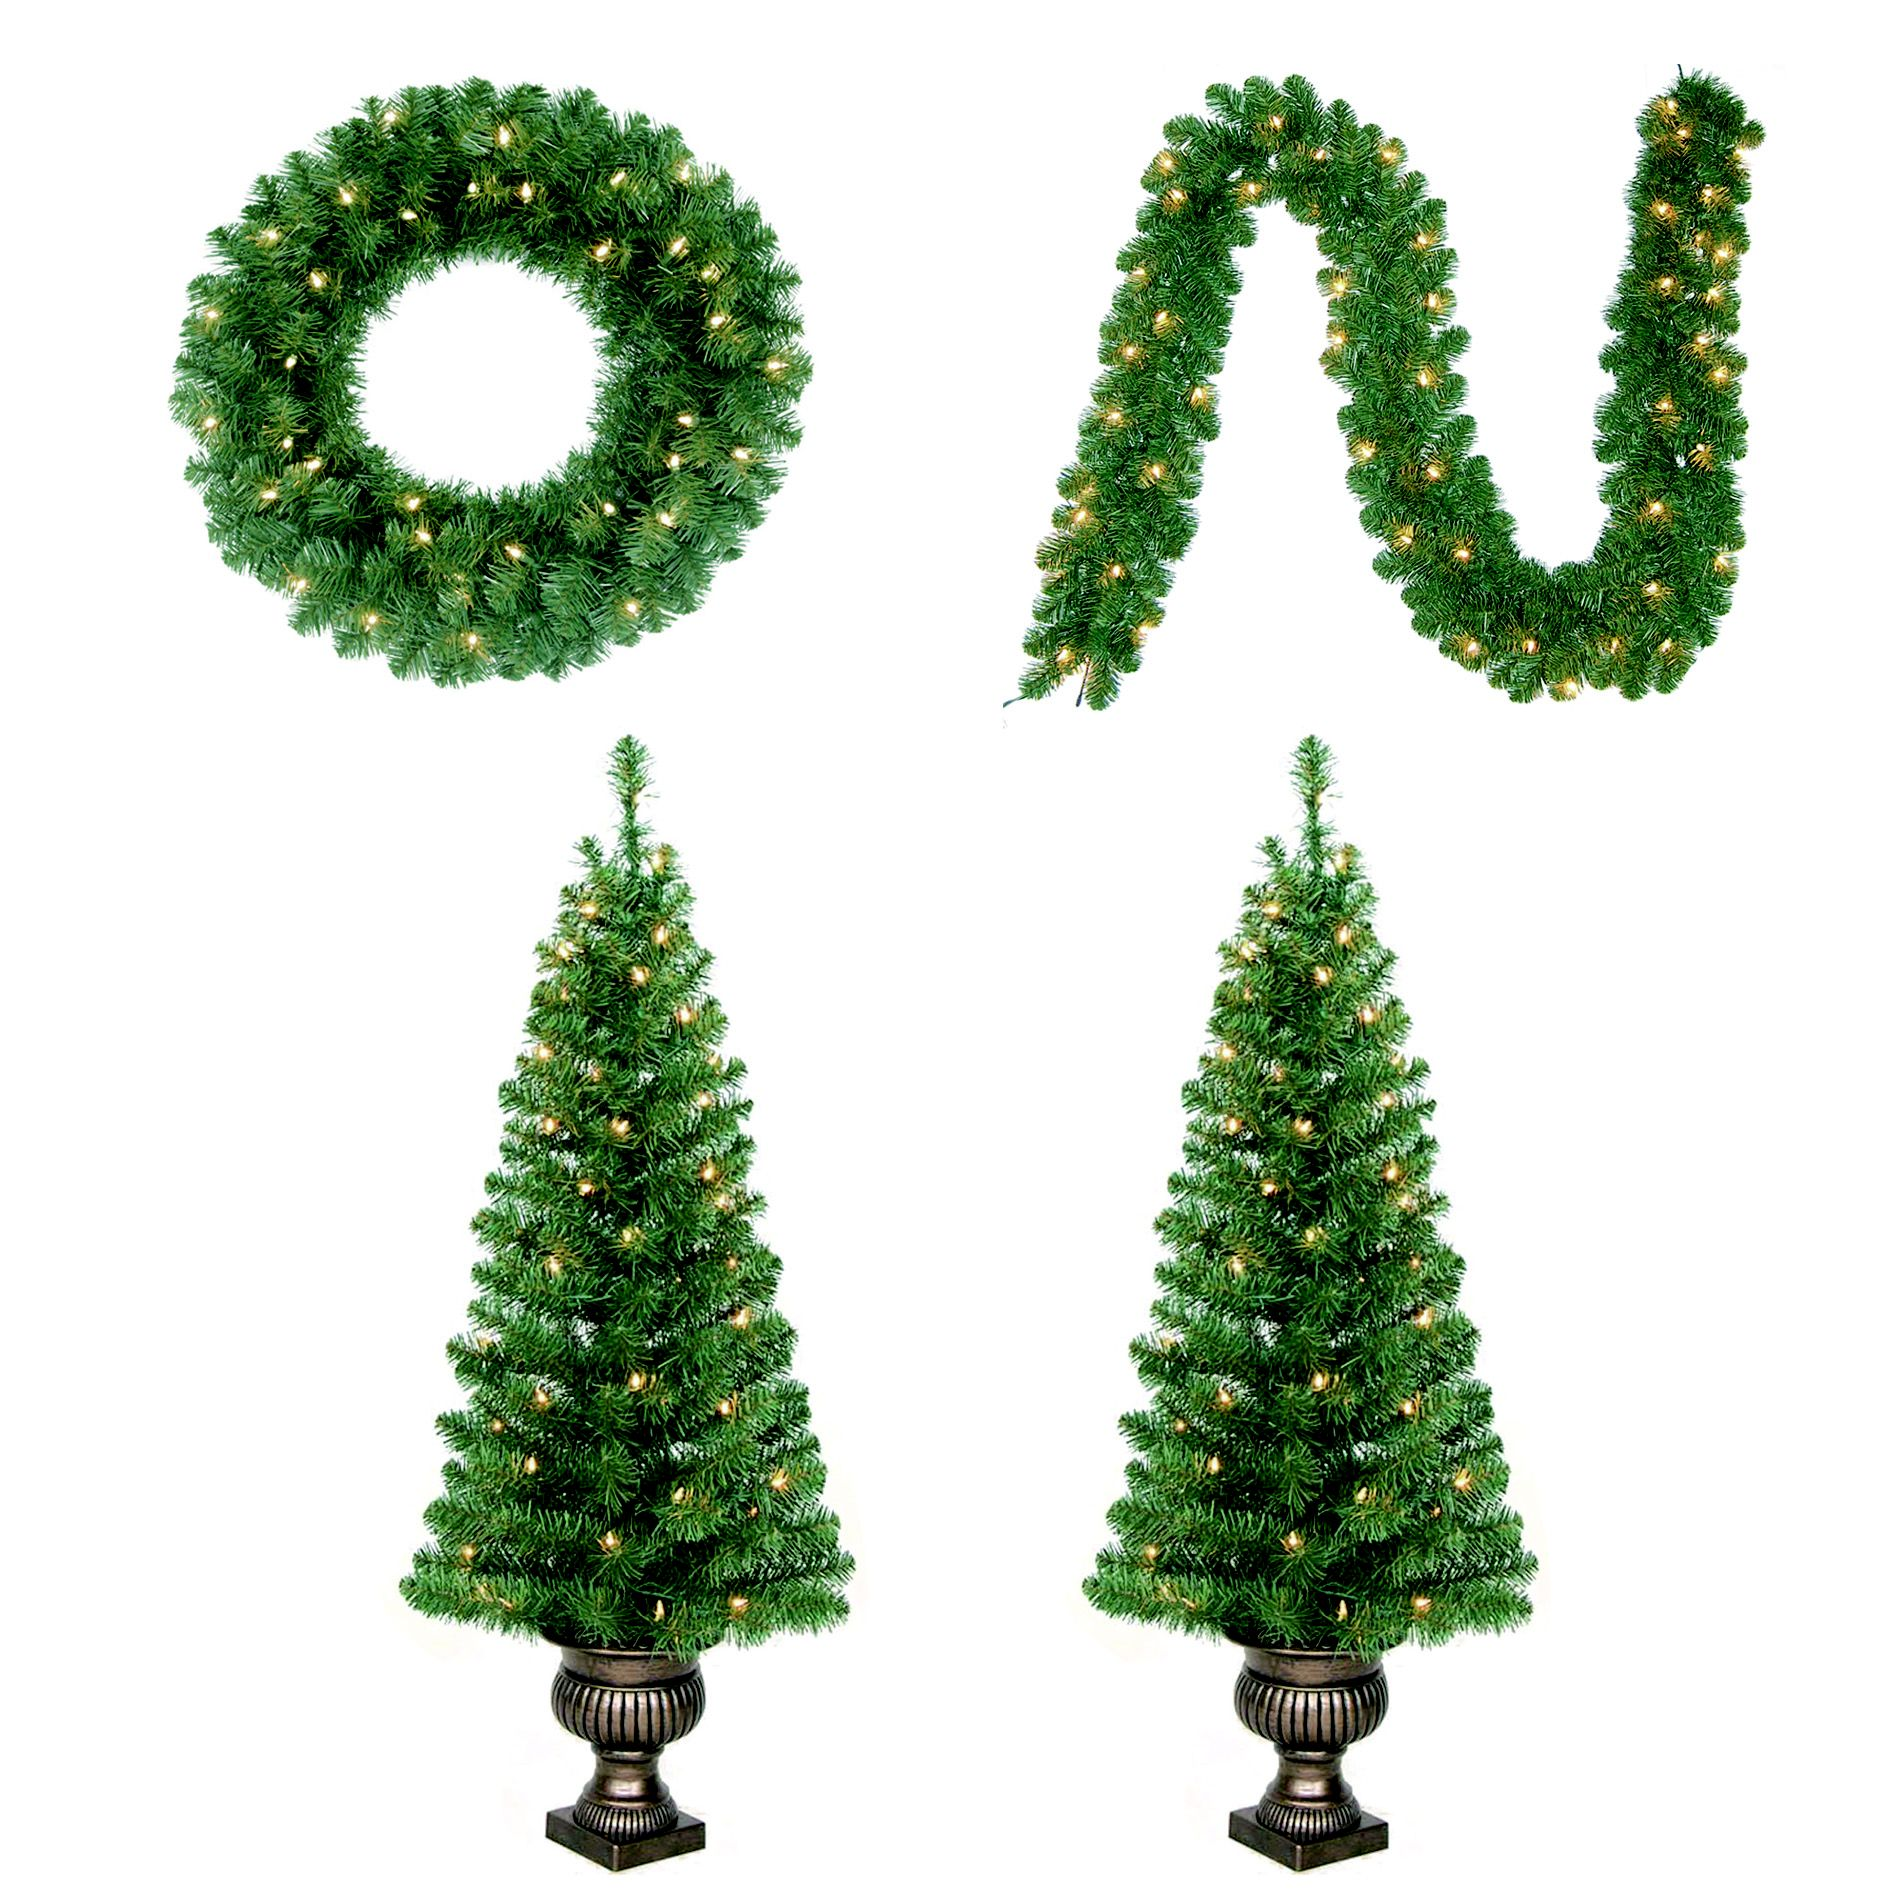 4 Piece Tree, Wreath & Garland Christmad